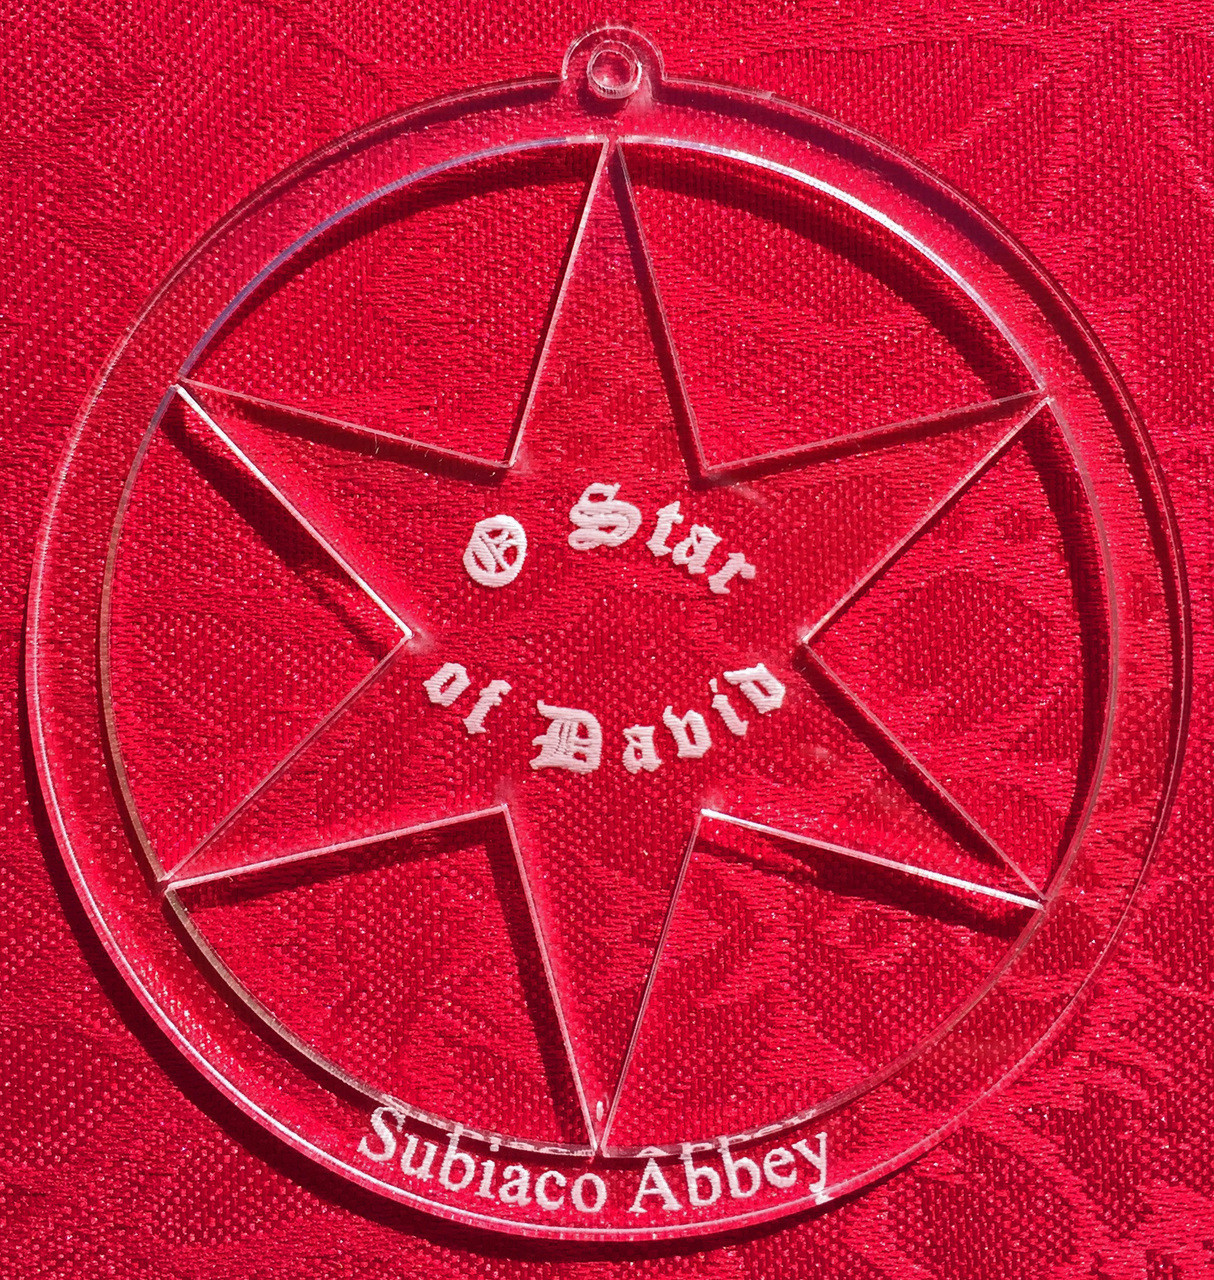 Star of David-3 inch diameter-a representation of strength, the star is scripted with 'O Star of David' and includes Subiaco Abbey lettering on the bottom of this circular ornament